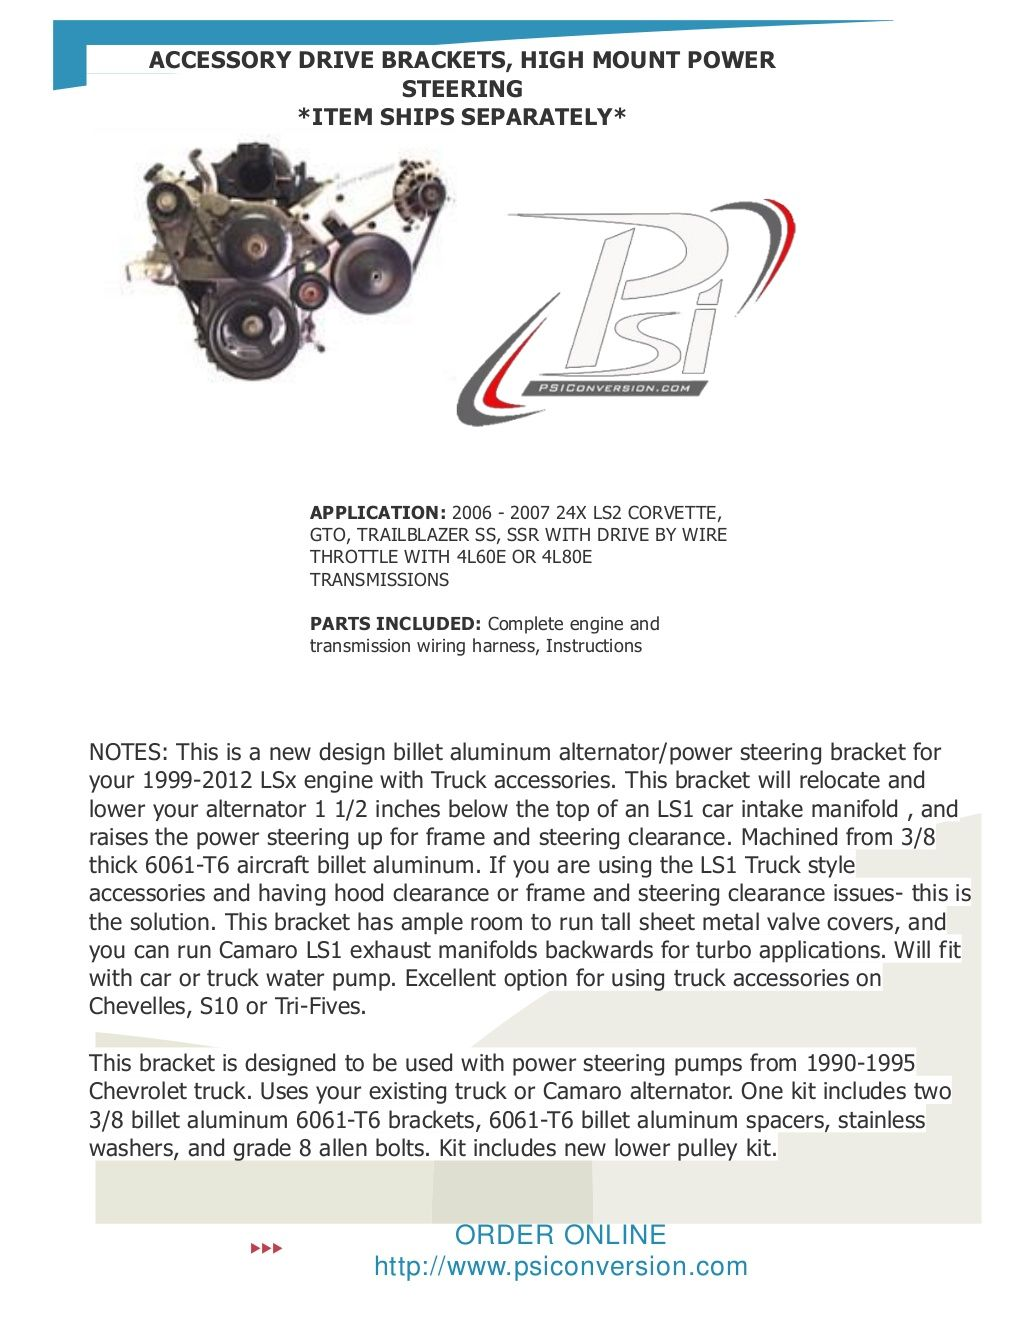 hight resolution of accessory drive brackets high mount power steering by psiconversion via slideshare trailblazer ss truck